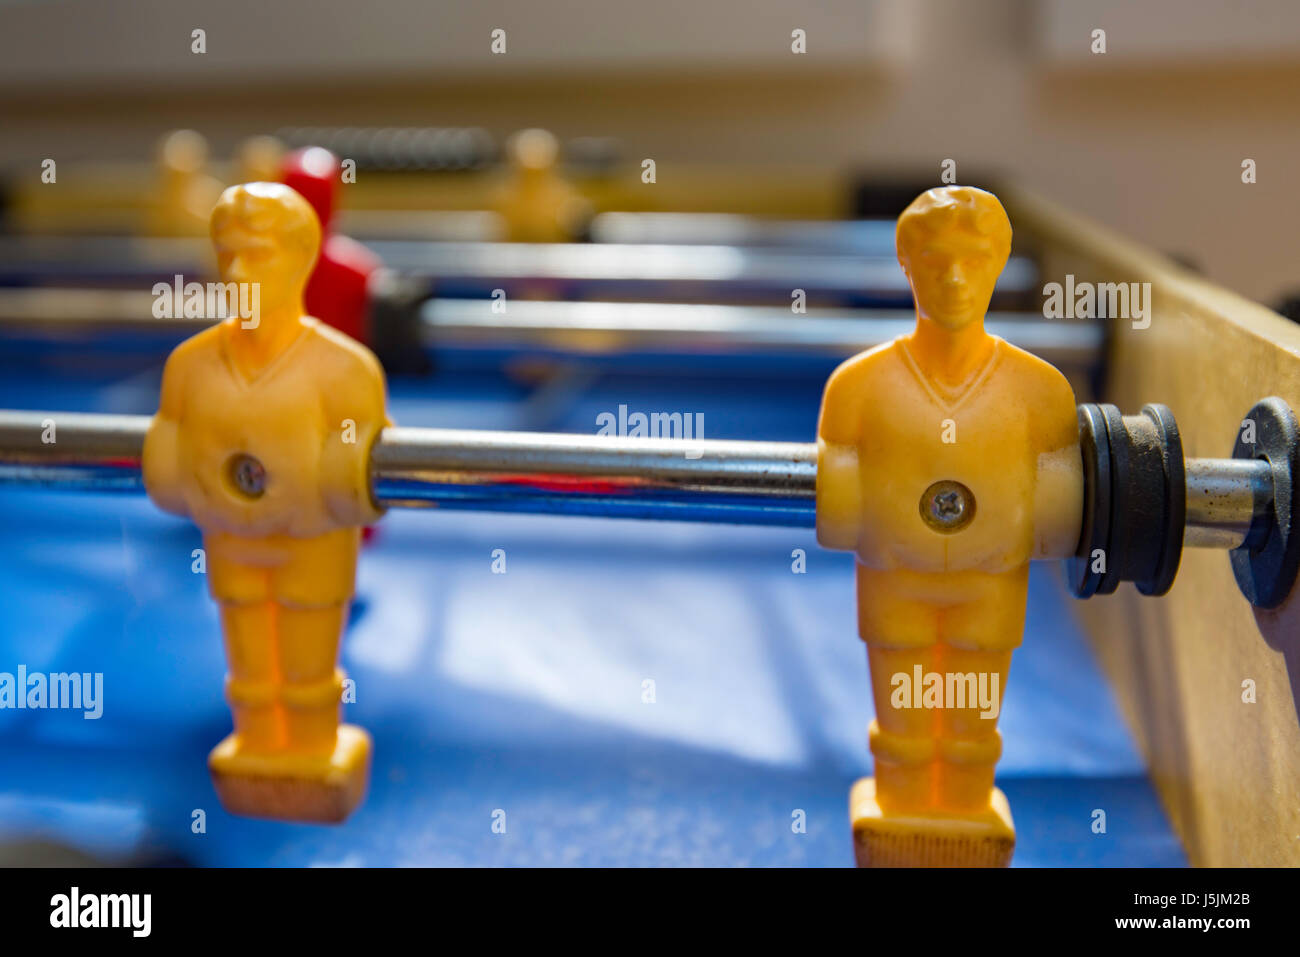 An old fussball, foosball or table football game which has painted white and red players - Stock Image